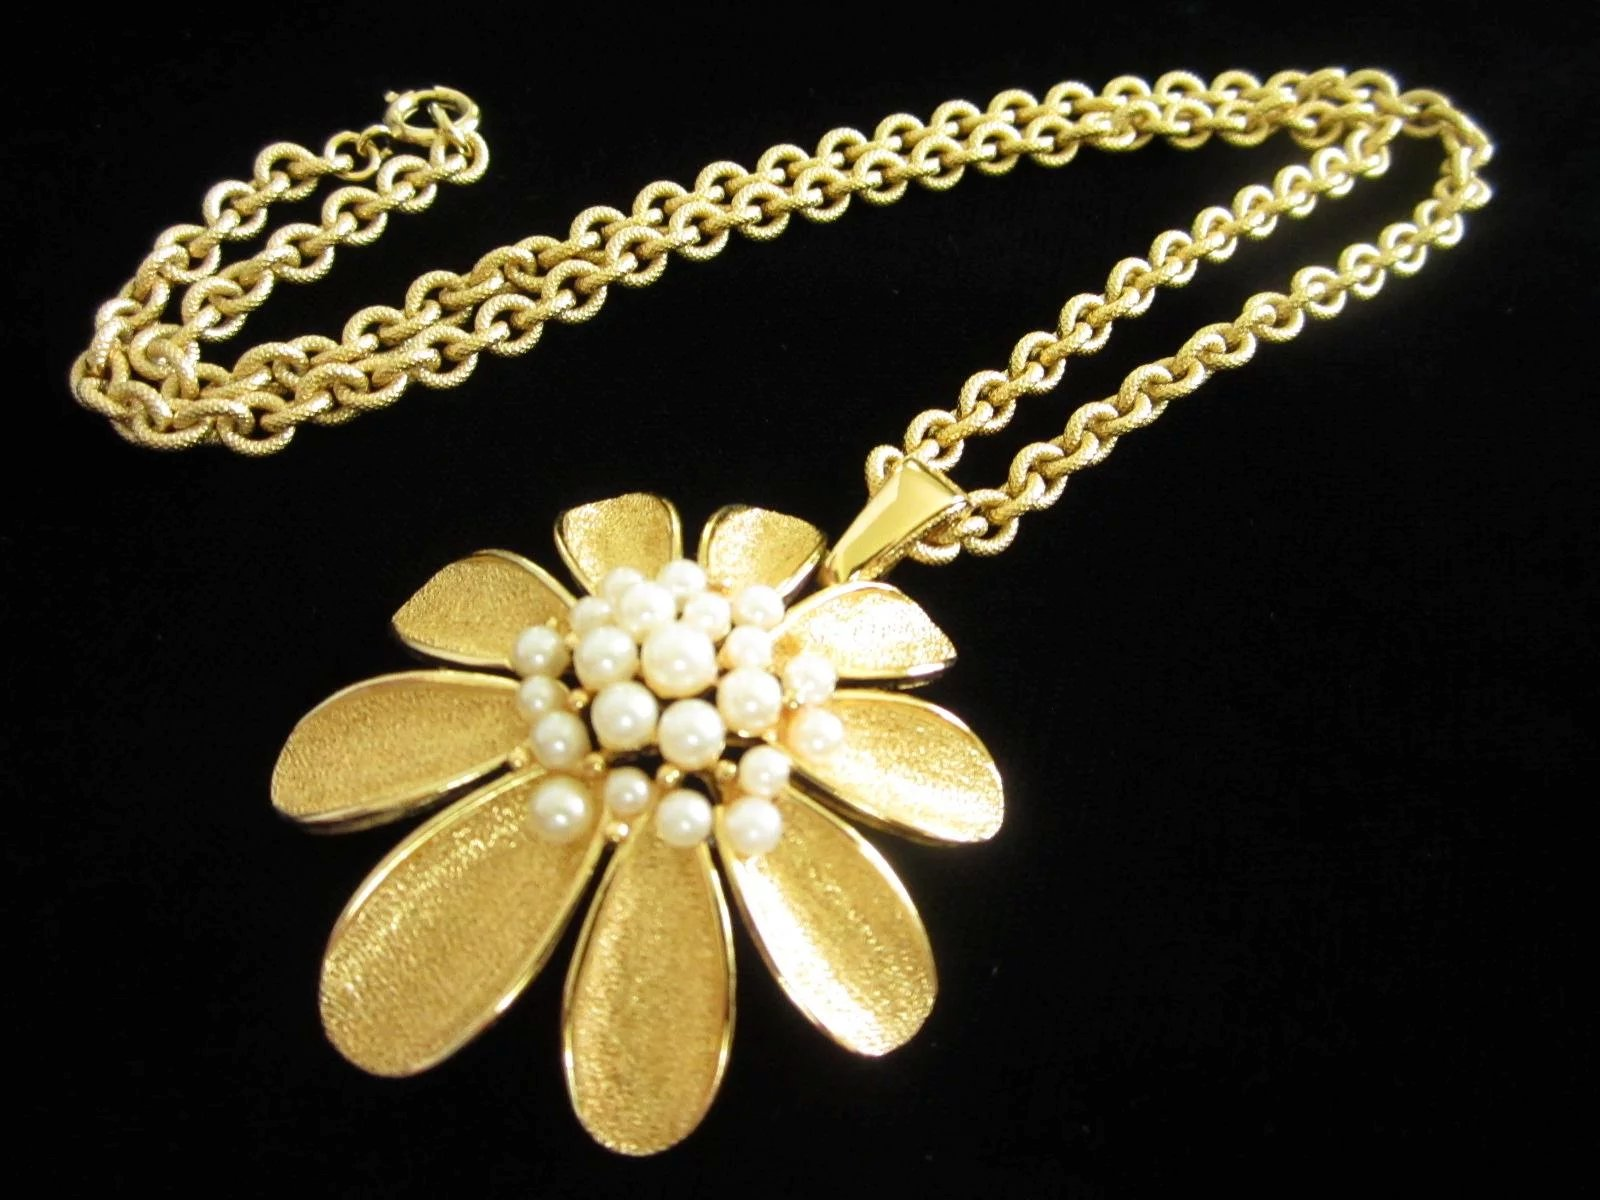 daffodil maree flower rings london shop gold engagement new min pendant wedding resized yellow dfygp necklace